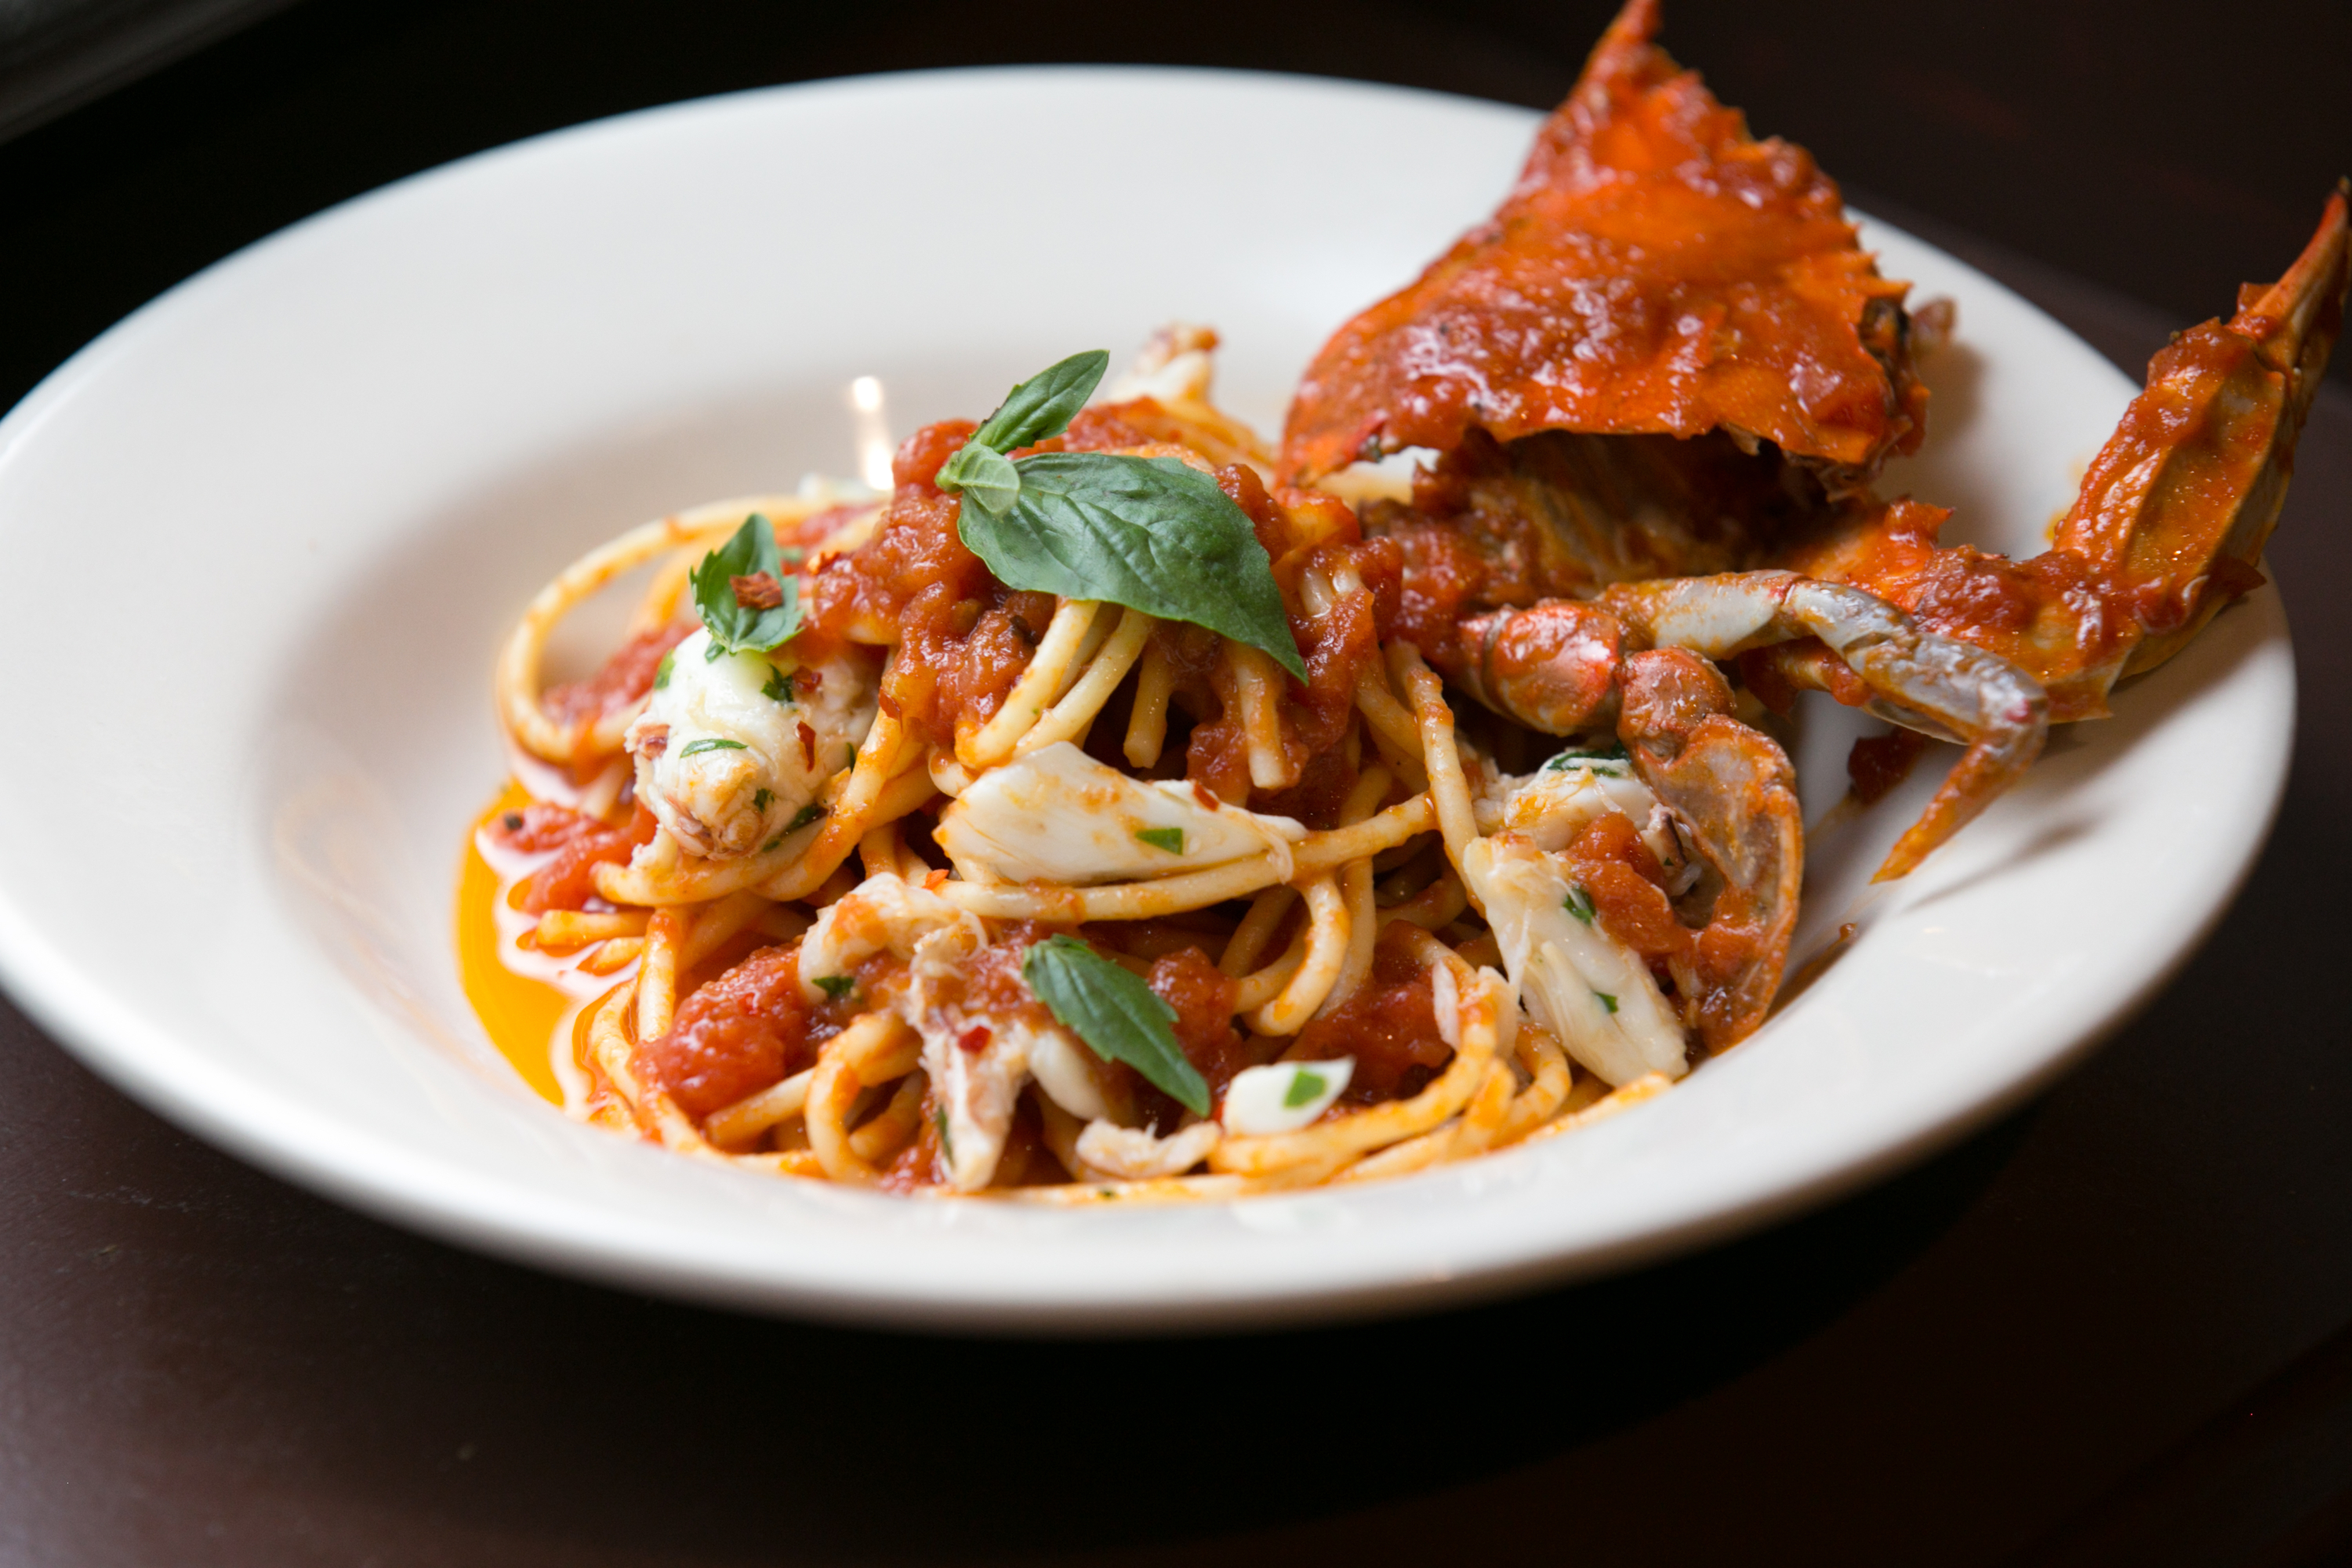 The spaghetti and crabs at Palizzi Social Club.